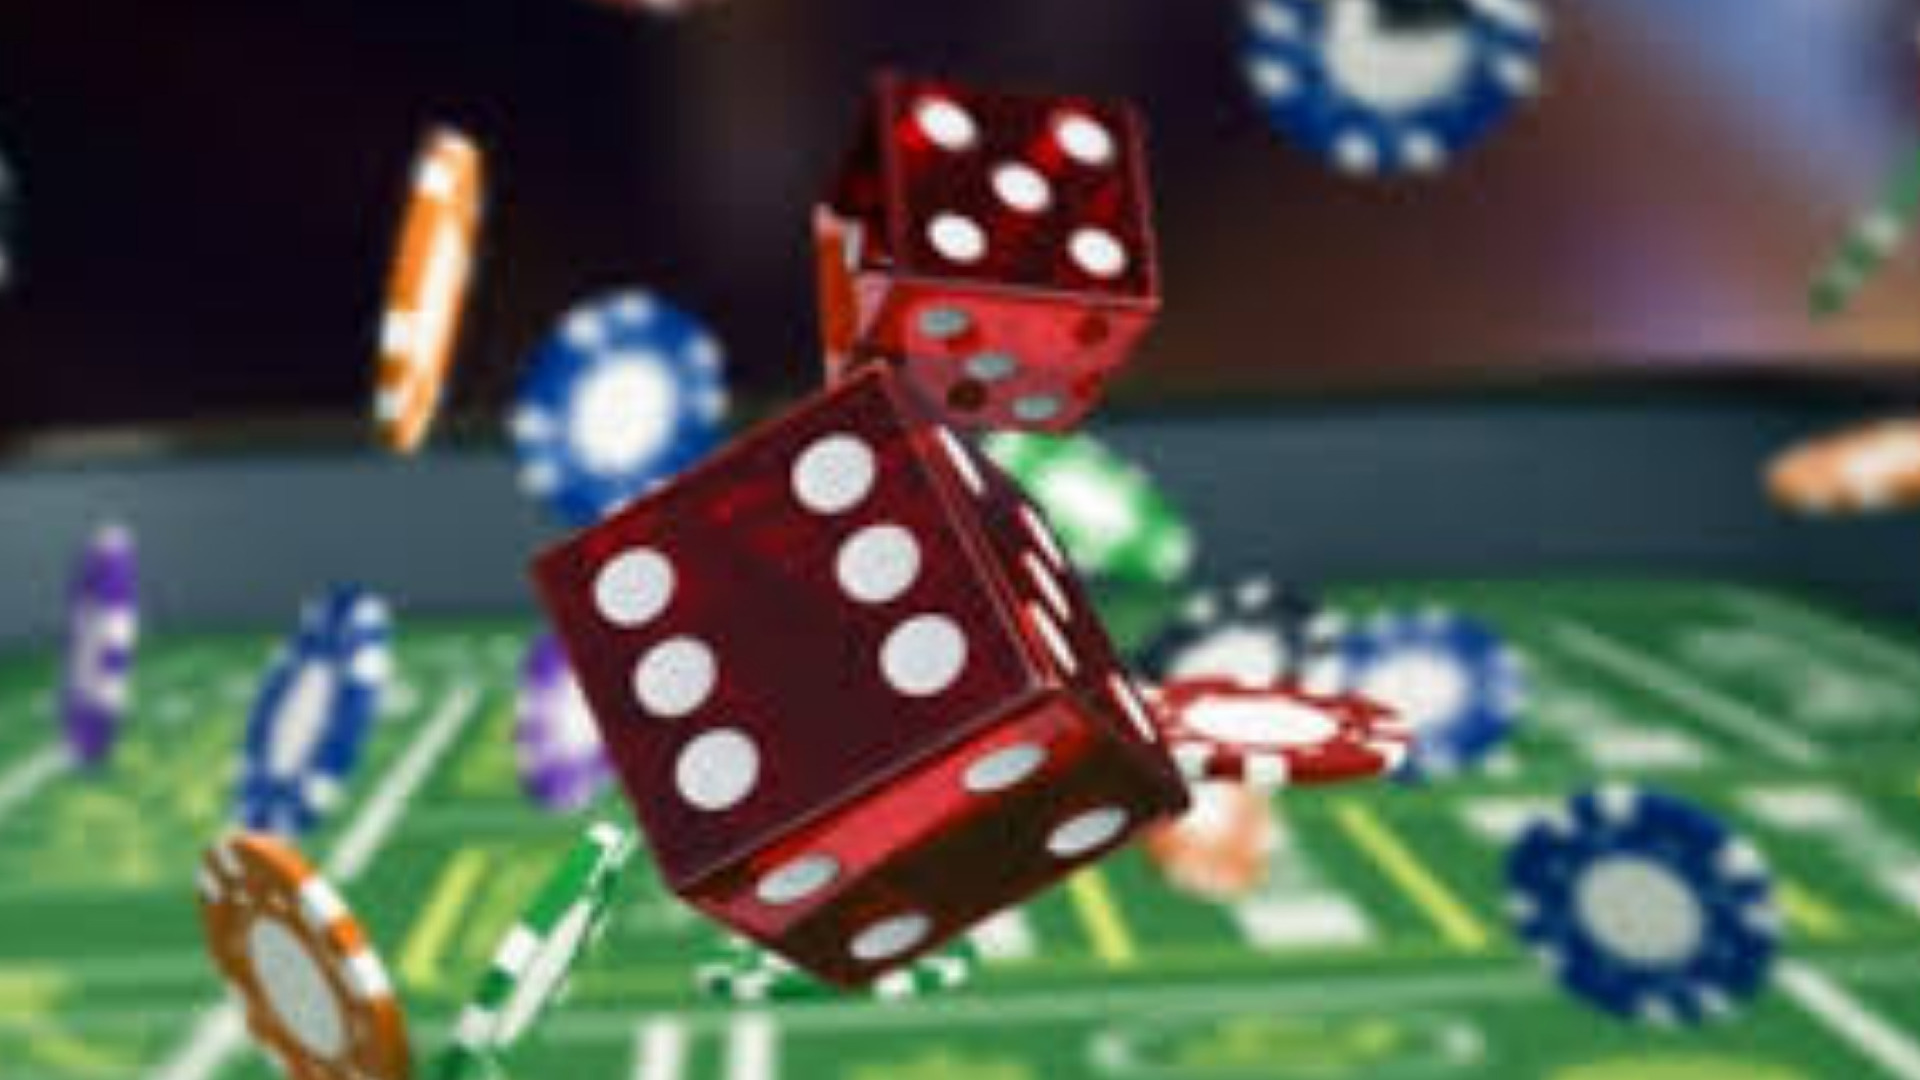 The game of football gambling online That is trending this age